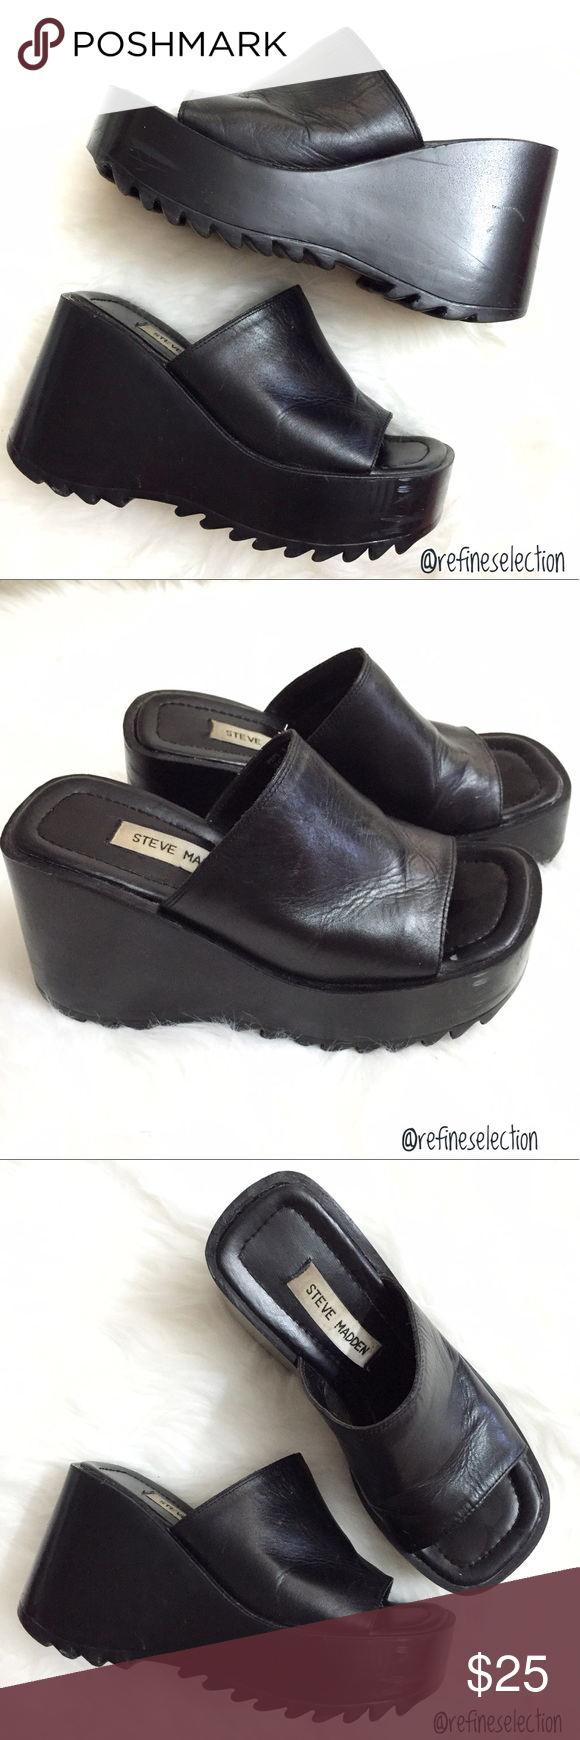 56a47ec305c1 Steve Madden Pepe Leather Chunky Platform Sandals Pre-loved in fair  condition